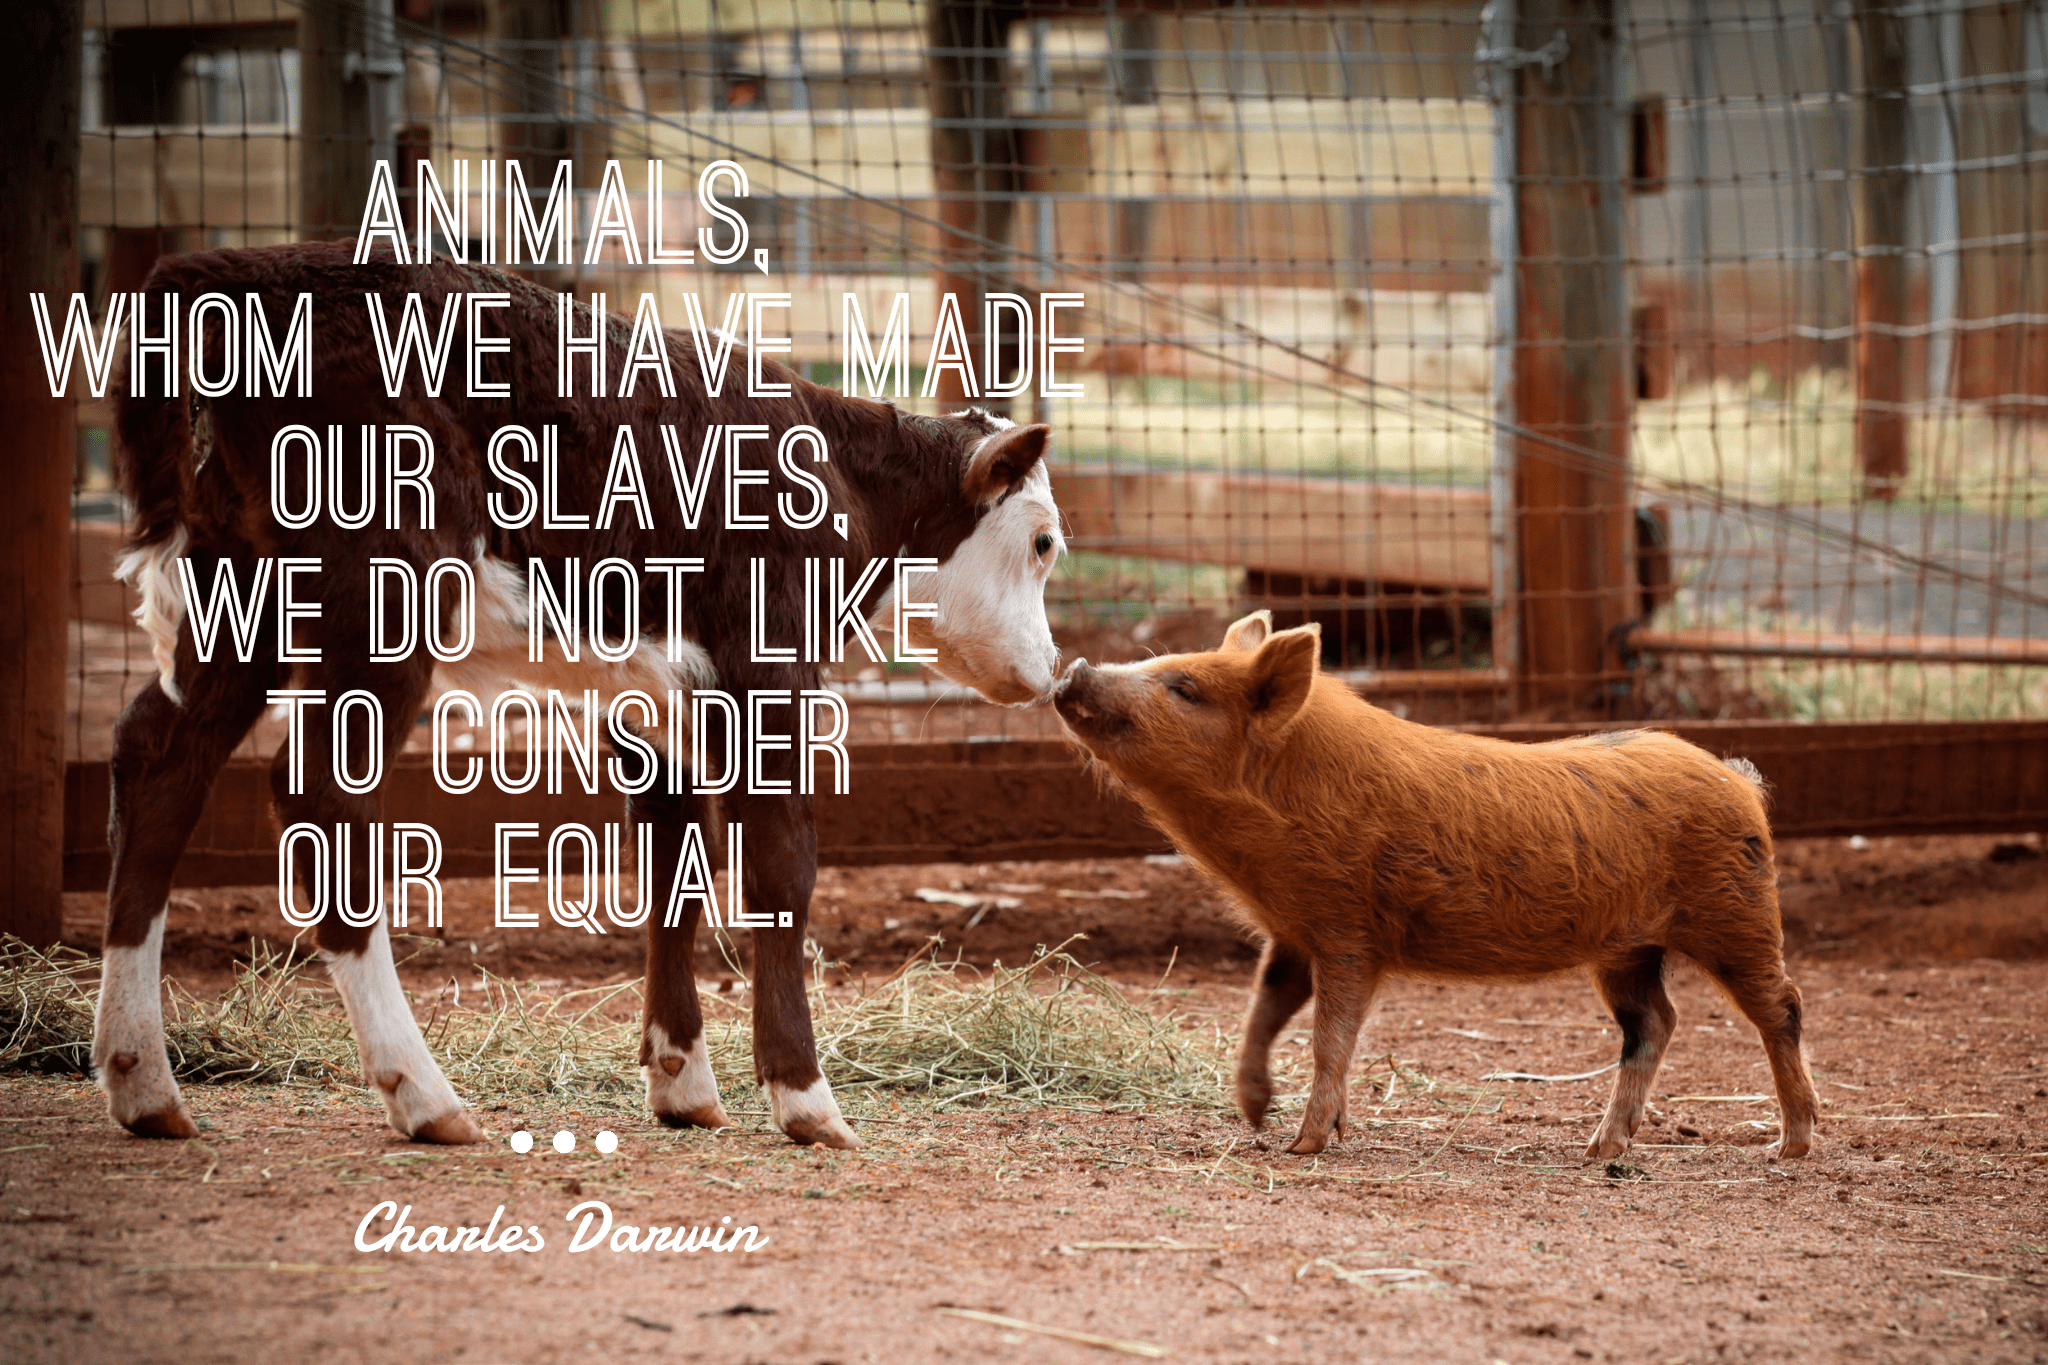 """Animals, whom we have made our slaves, we do not like to consider our equal."" -Charles Darwin [2048×1365]"